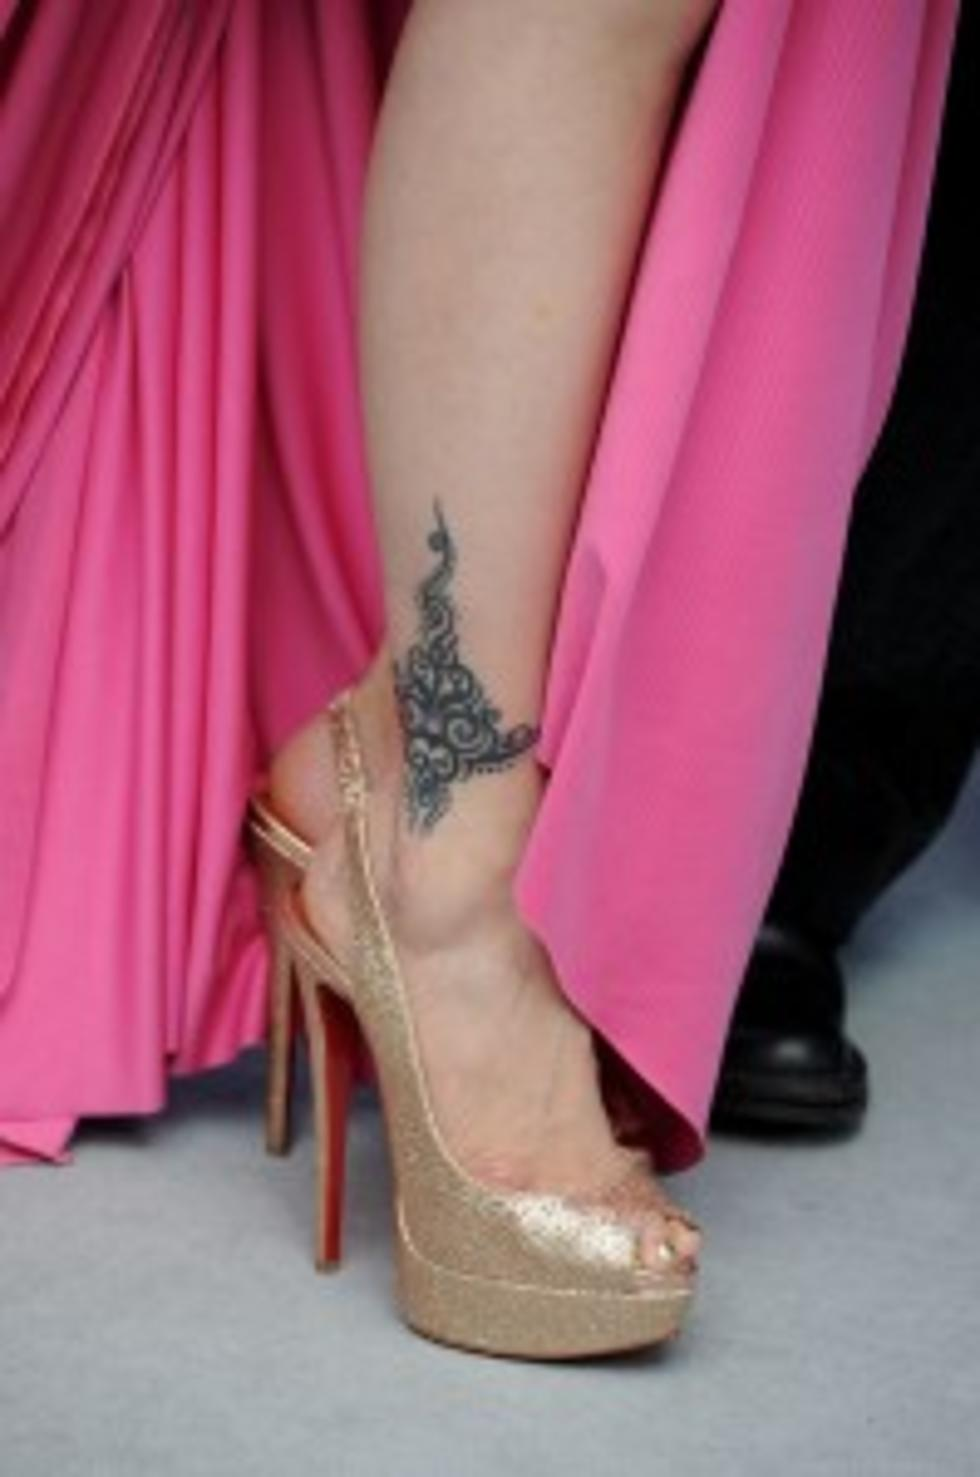 Woman sexiest place tattoo to for a a get 7 Places